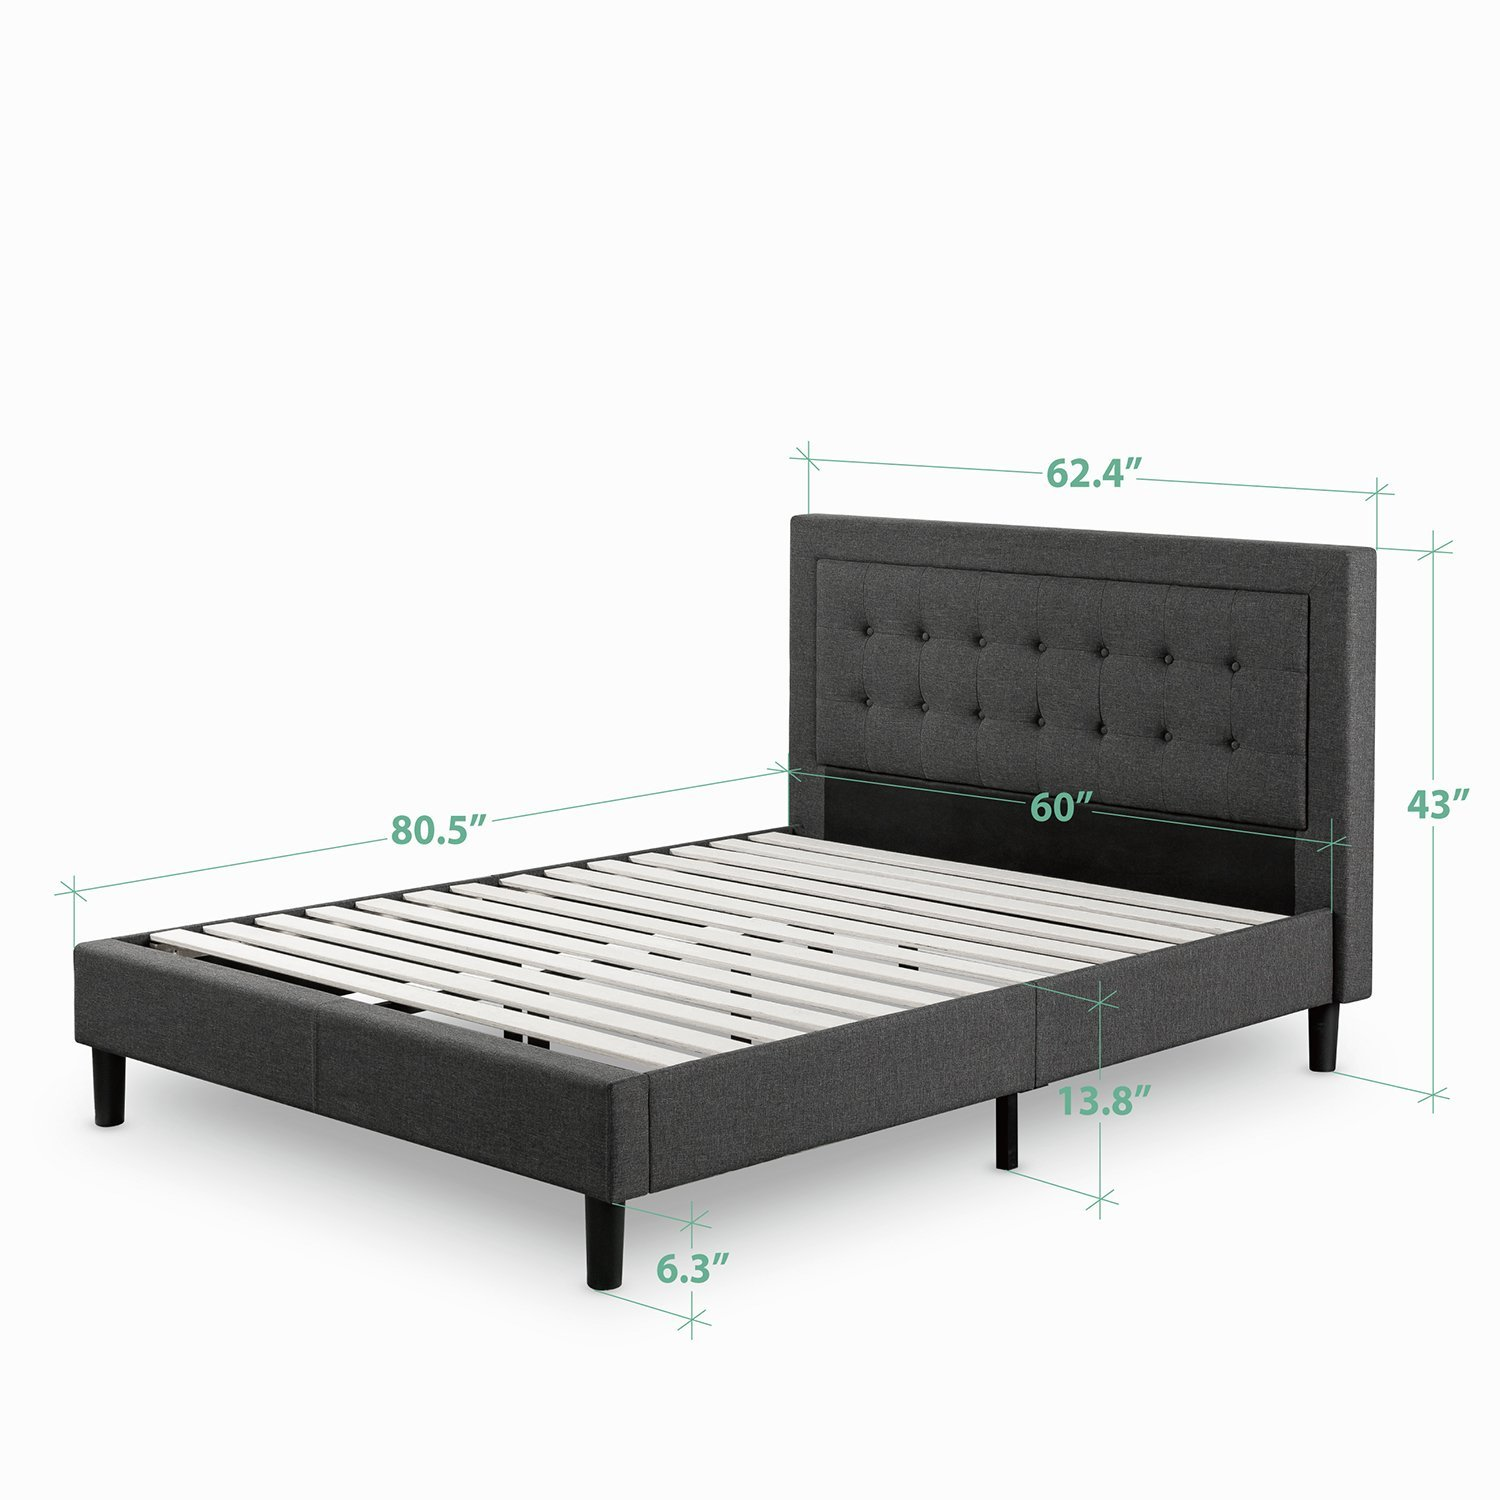 Mattress Platform Best Bed Frames Mattresshelp Org